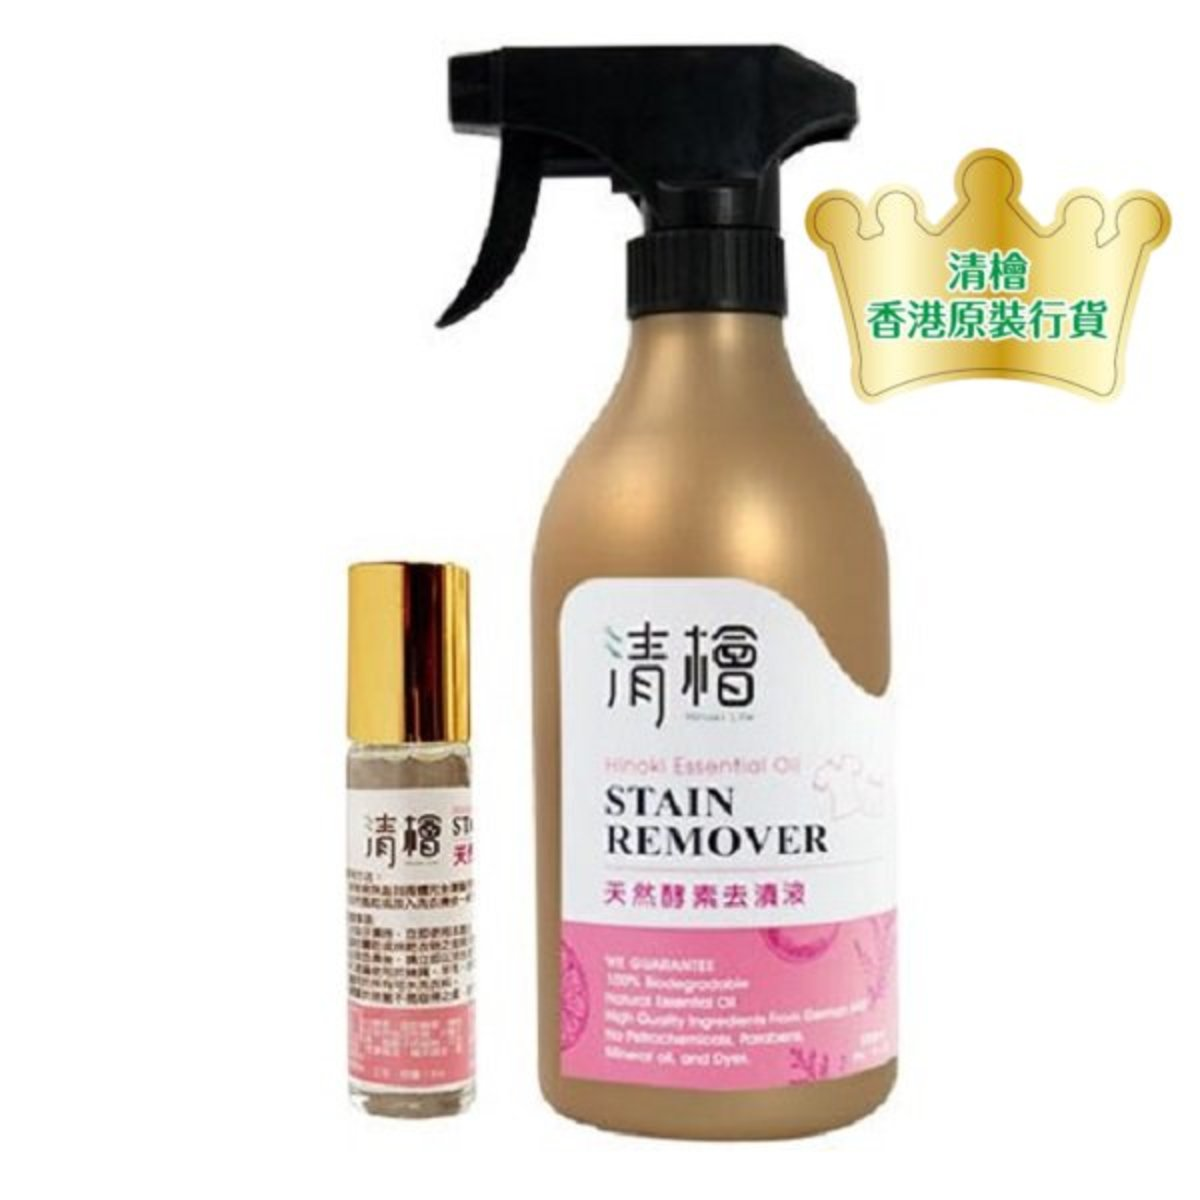 Scouring Liquid Natural Enzymes (500ML + 8ML) Natural sterilization SGS certification [Hong Kong original licensed]